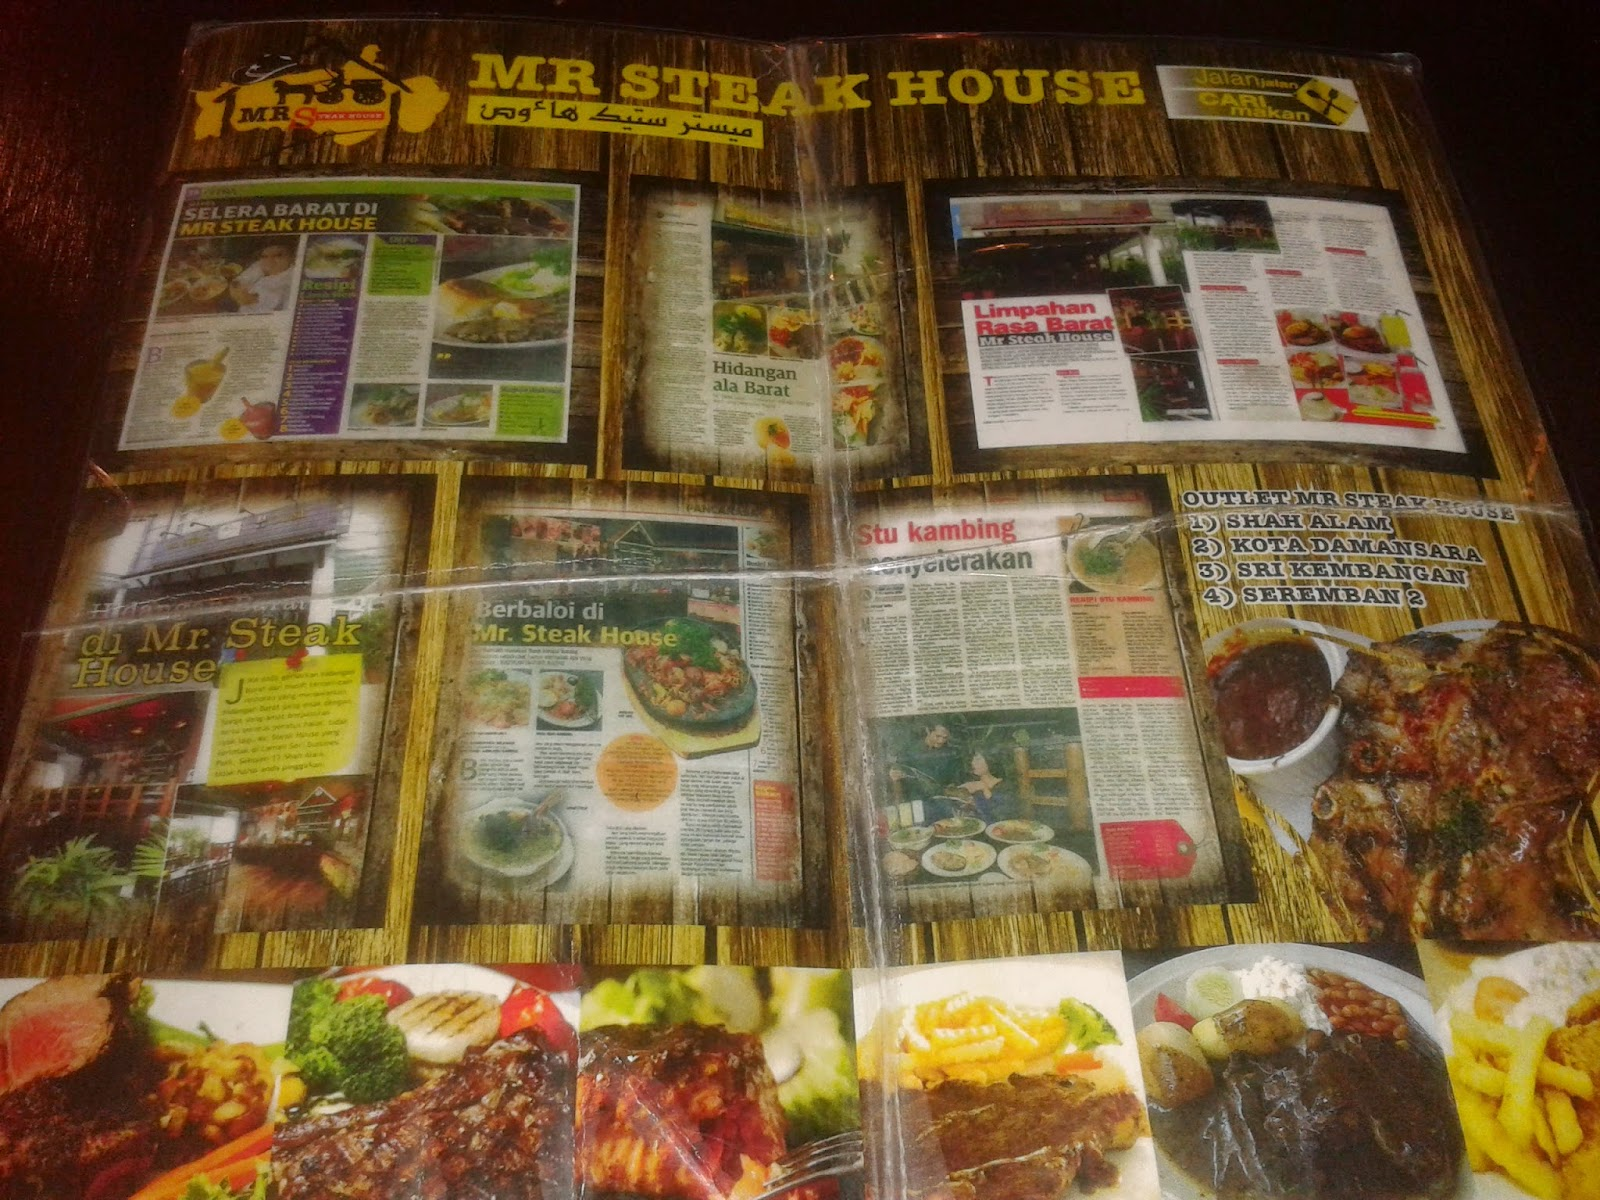 We Took A Table Inside The Restaurant Waitress With Cowboy Hat Came Quickly To Ist Us Menu My Husband Actually Enquired About Some Of